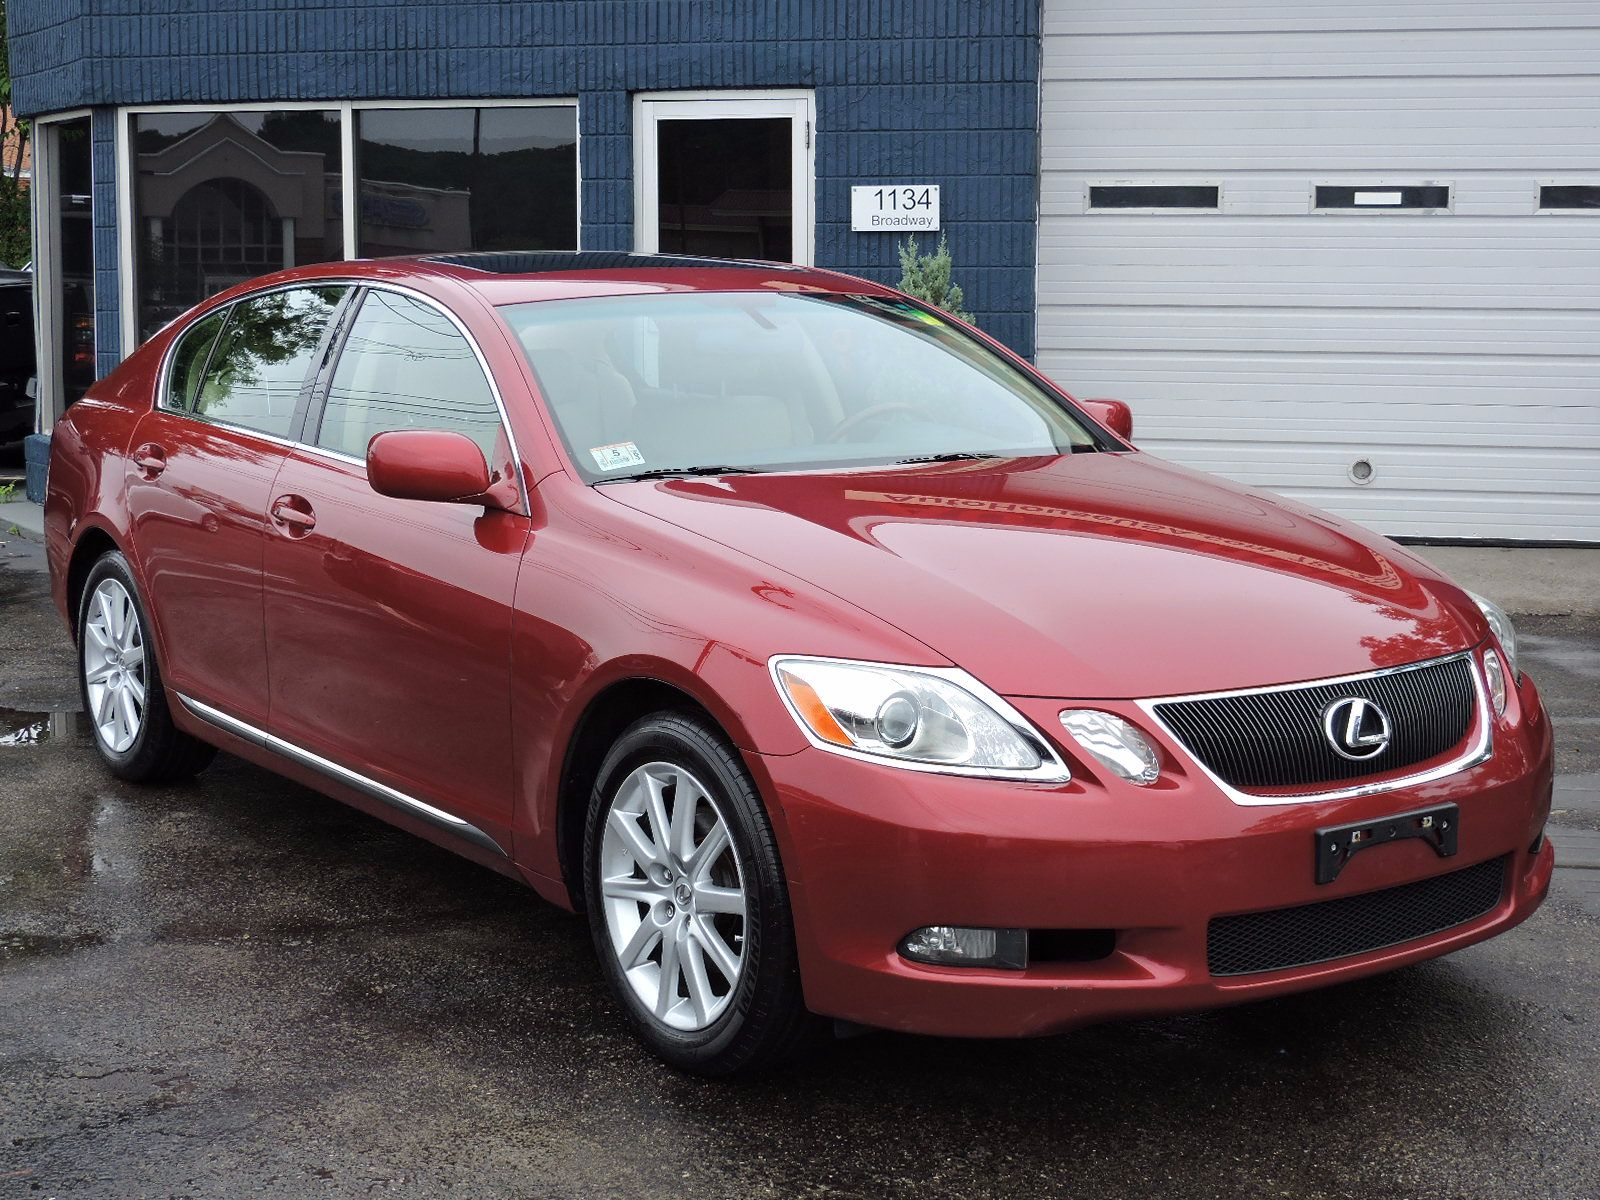 Used 2006 Lexus GS 300 at Auto House USA Saugus